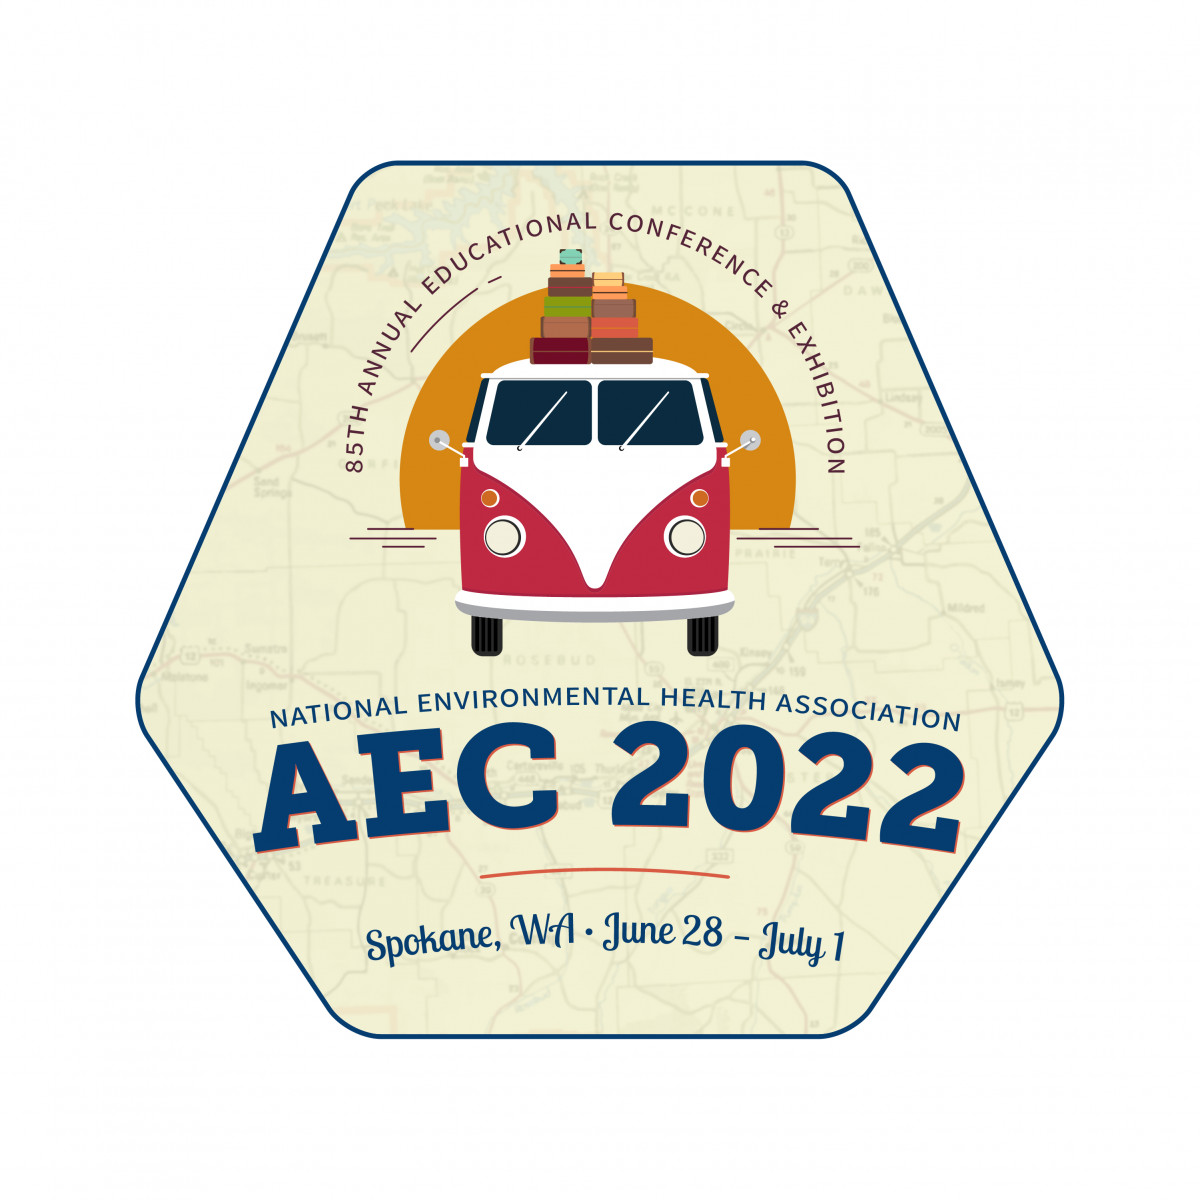 NEHA 2022 Annual Educational Conference & Exhibition